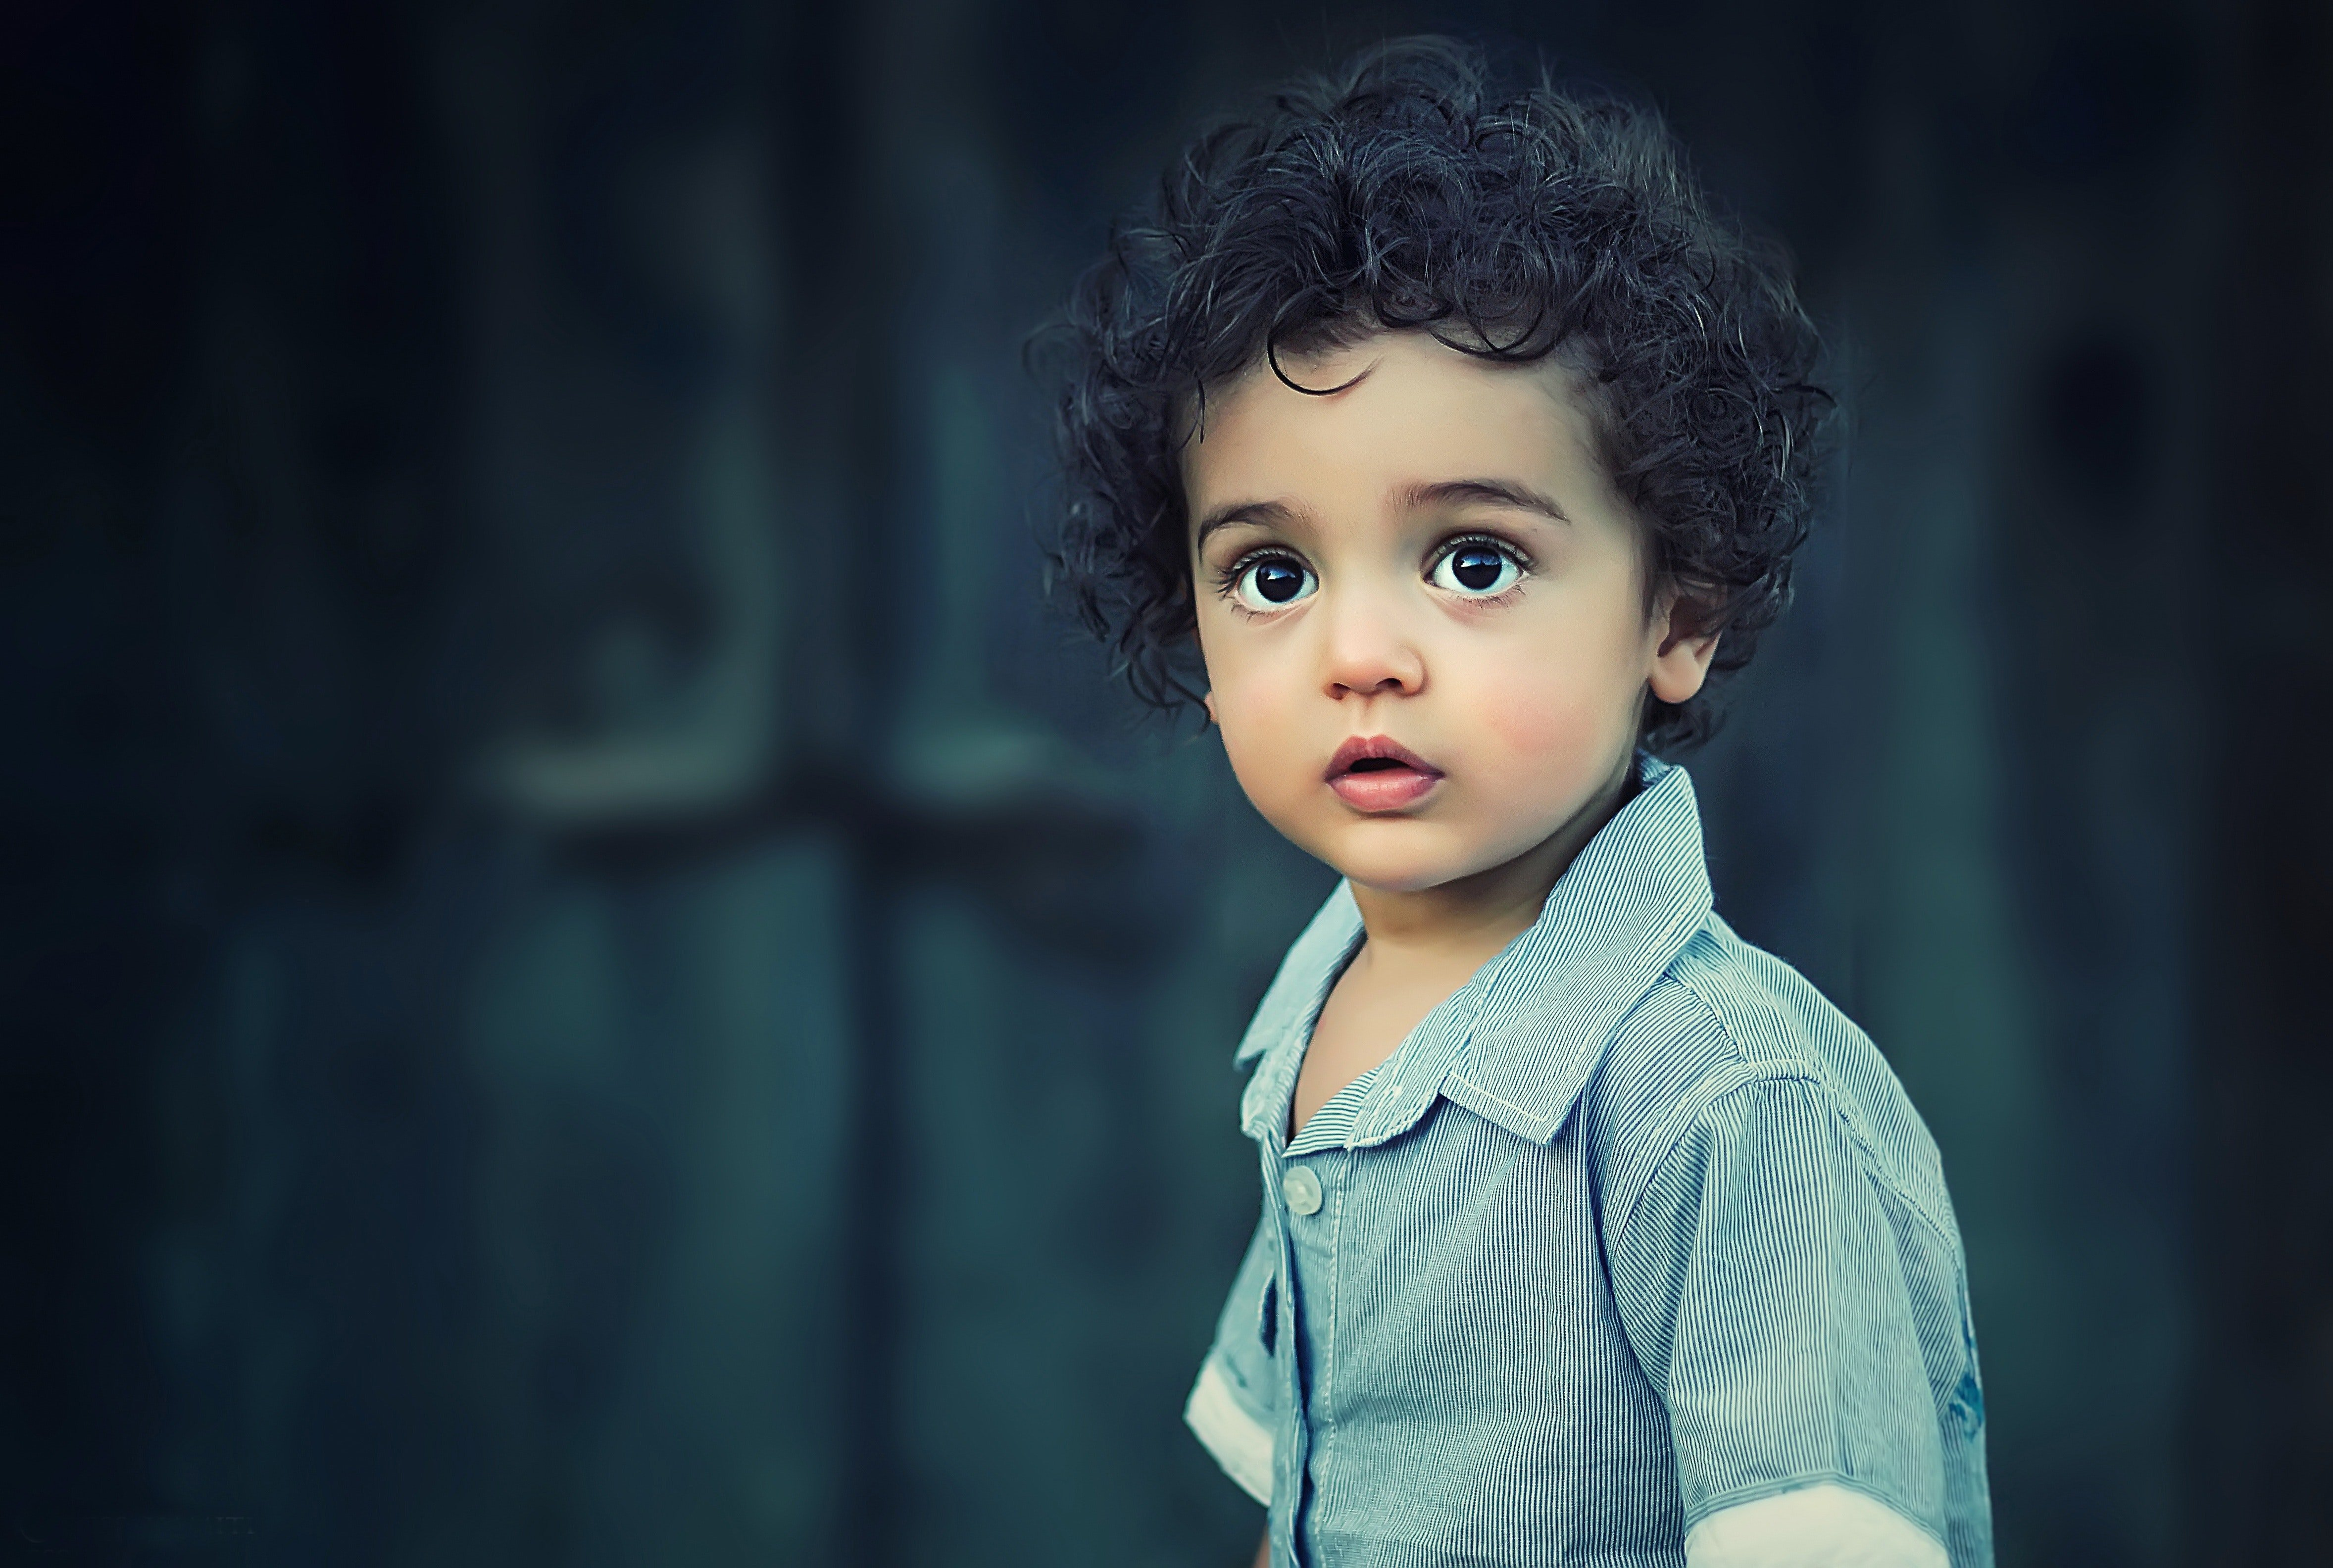 Pictured - A photo of a toddler with curly hair wearing a gray collard shirt | Photo: Pexels